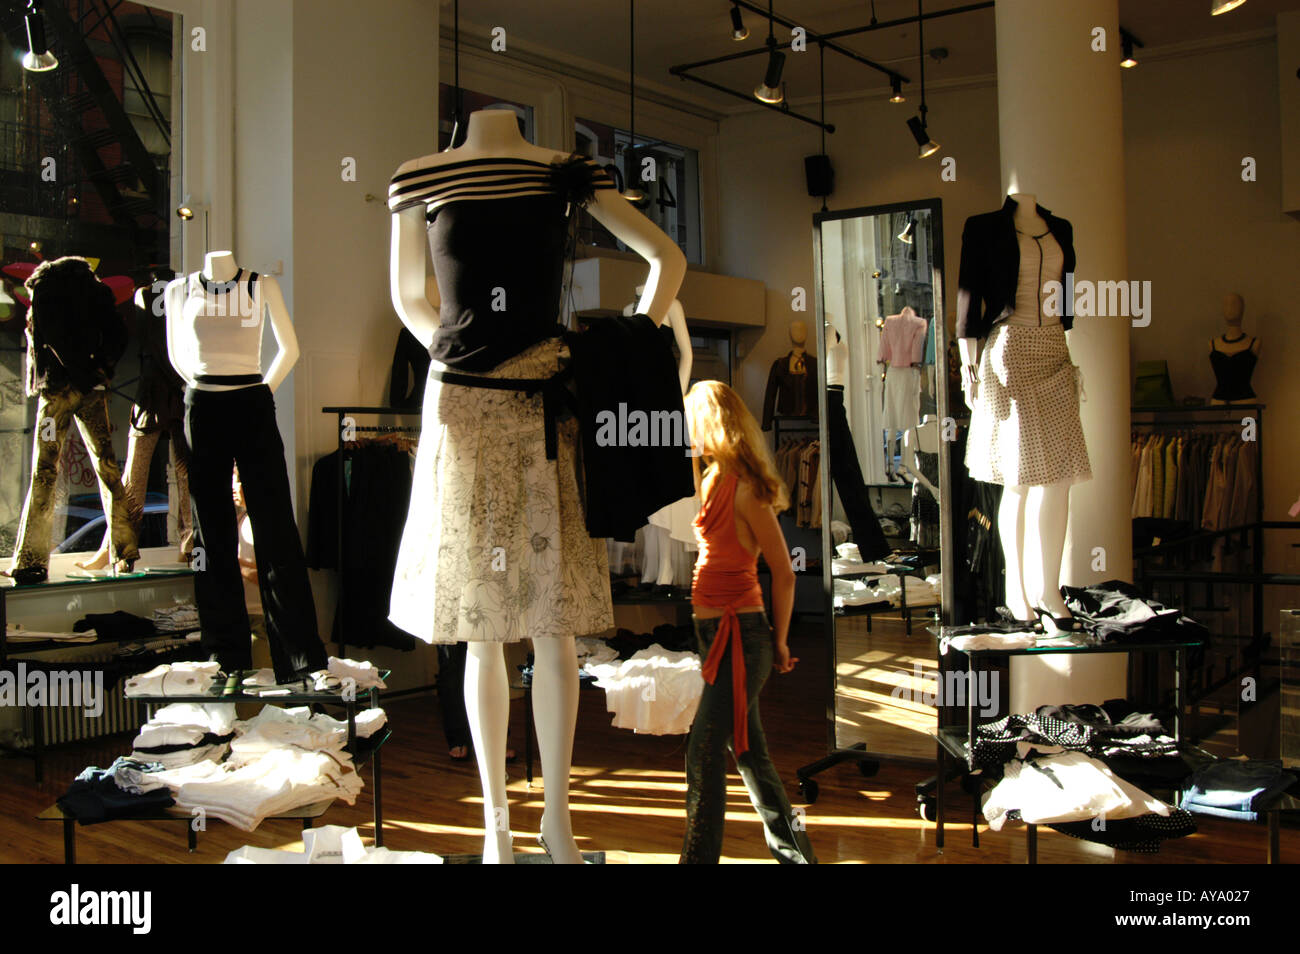 989f175fdcf47 WOMEN'S FASHION STORE SOHO, NEW YORK CITY, USA Stock Photo: 1810470 ...